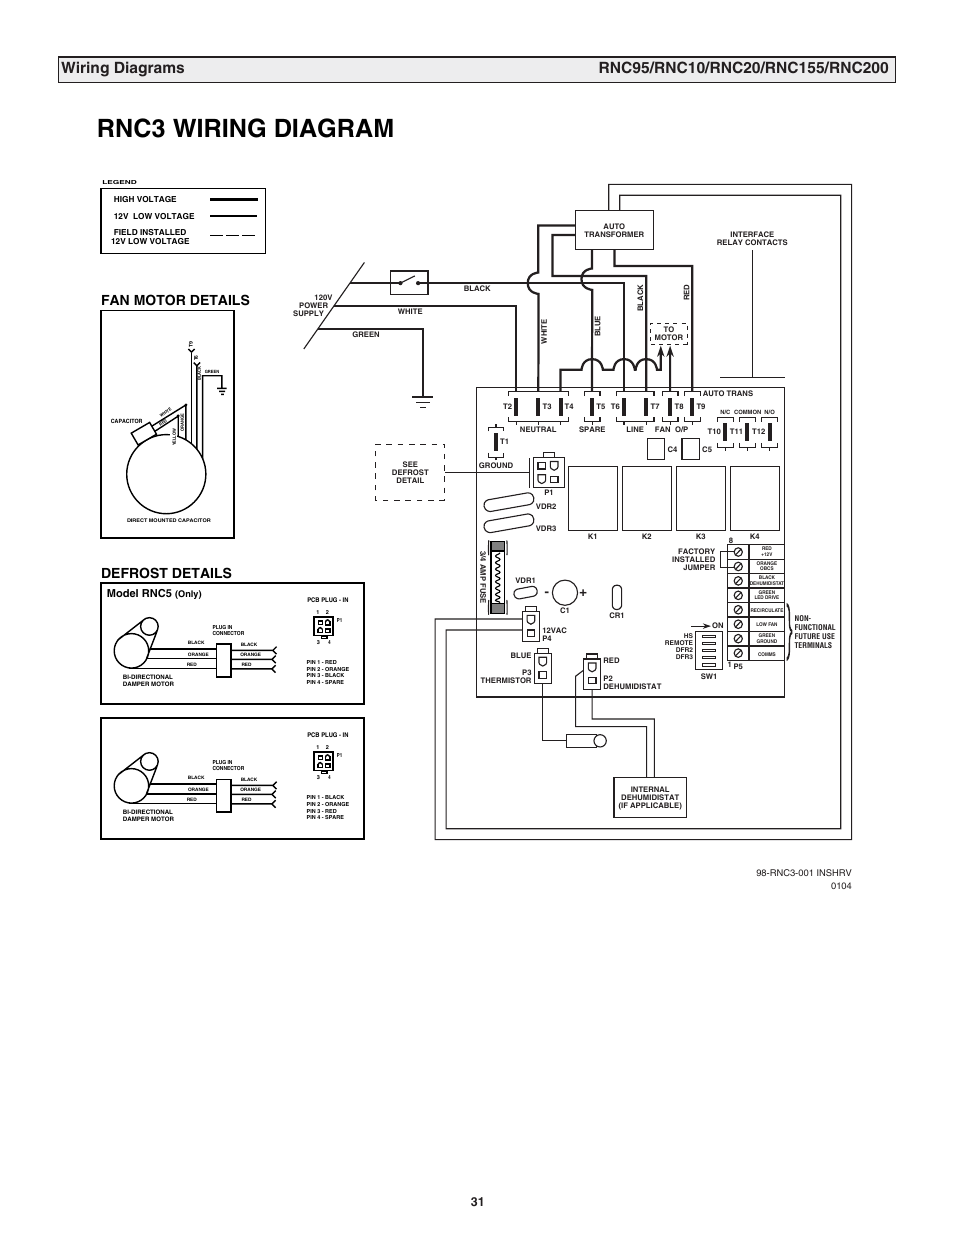 Wiring Diagram Of Manual Defrost Wiring Diagram And